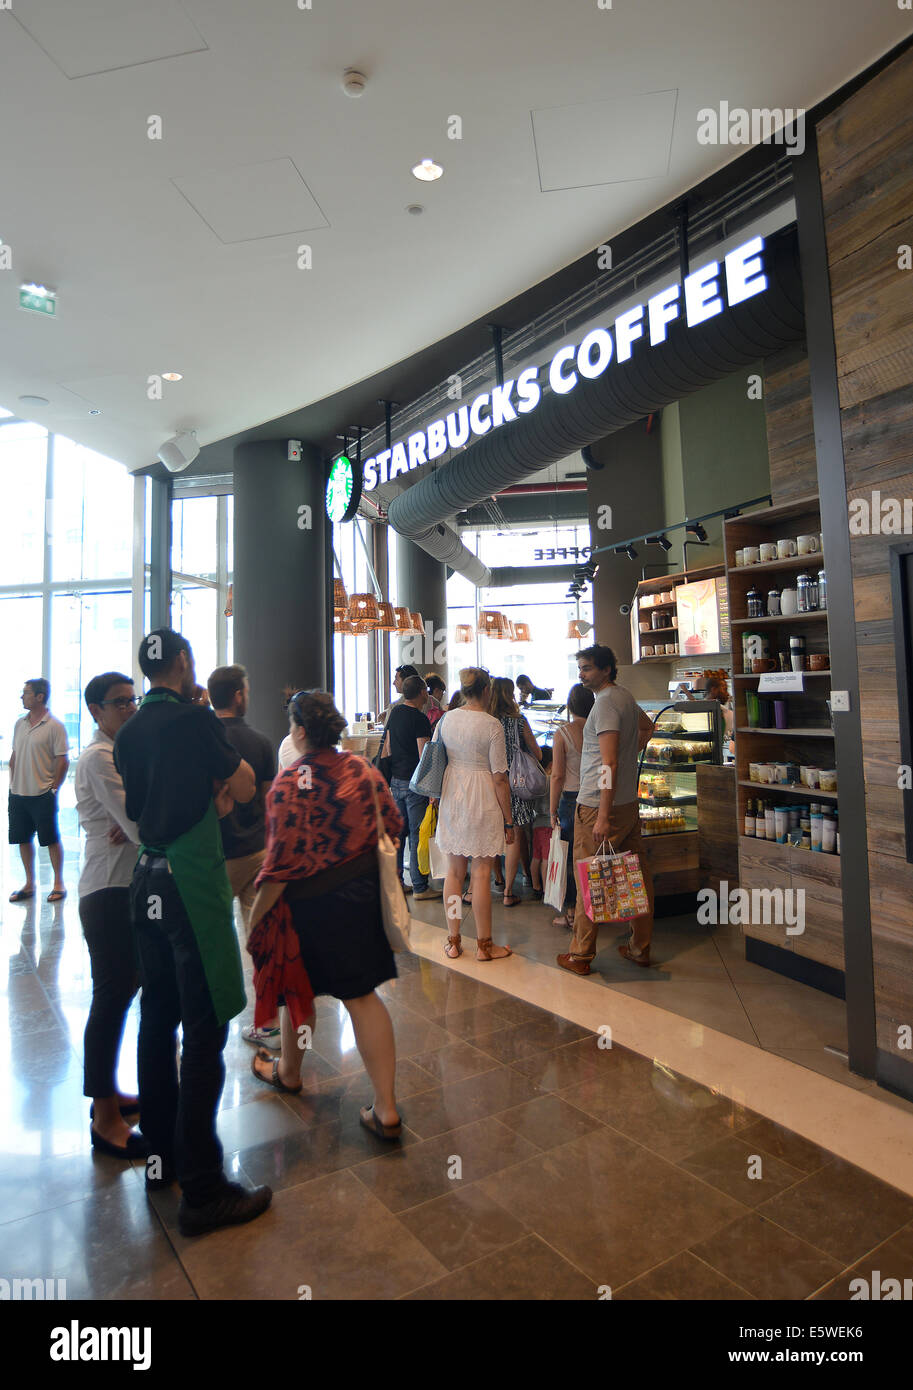 Les terrasses stock photos les terrasses stock images alamy - Starbucks marseille vieux port ...